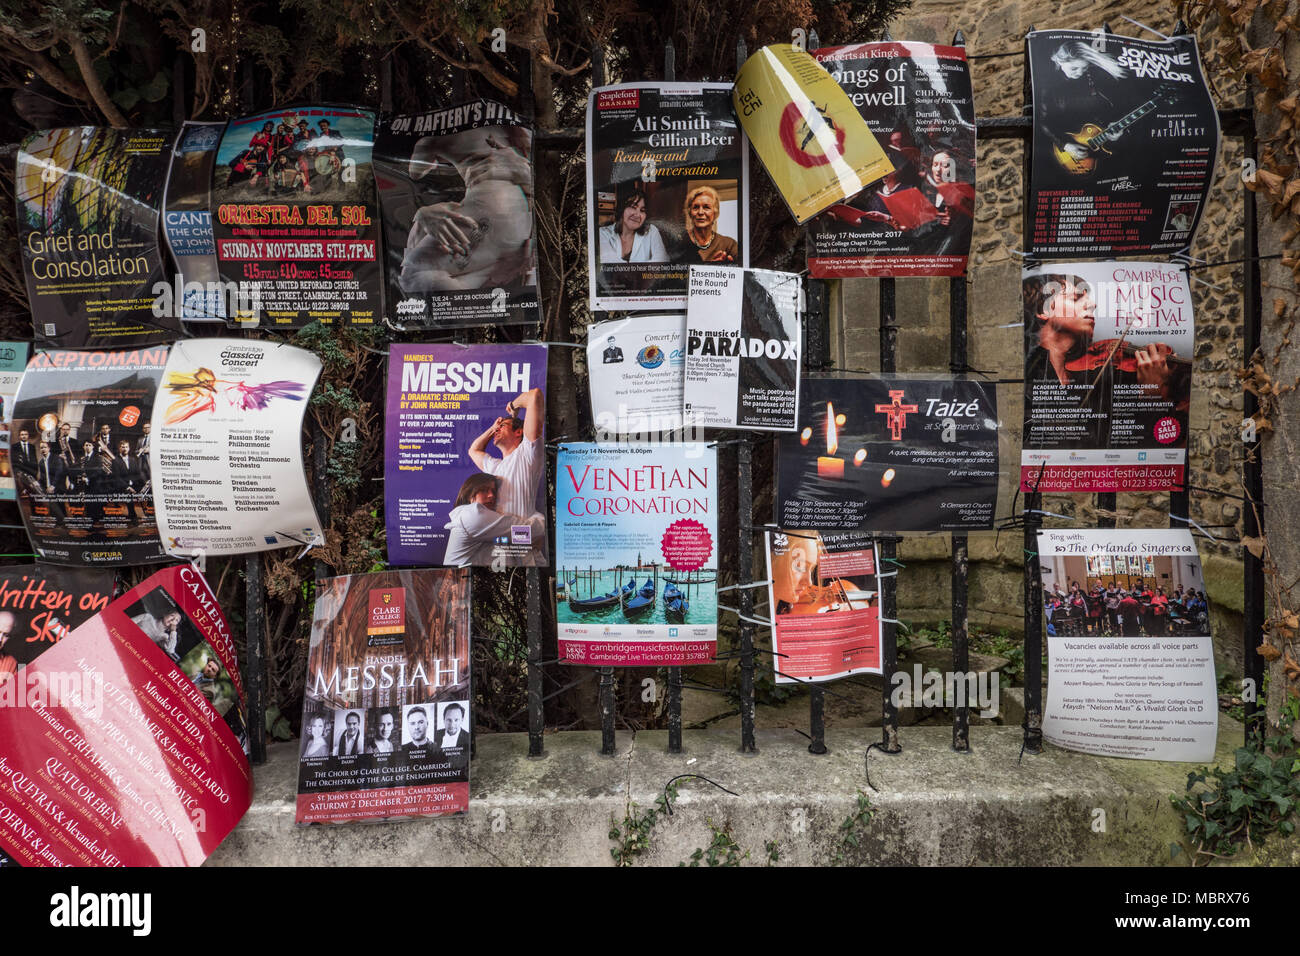 Promotional posters advertising classical music concerts and talks. Posters are attached to railings in the university city of Cambridge, England UK. - Stock Image